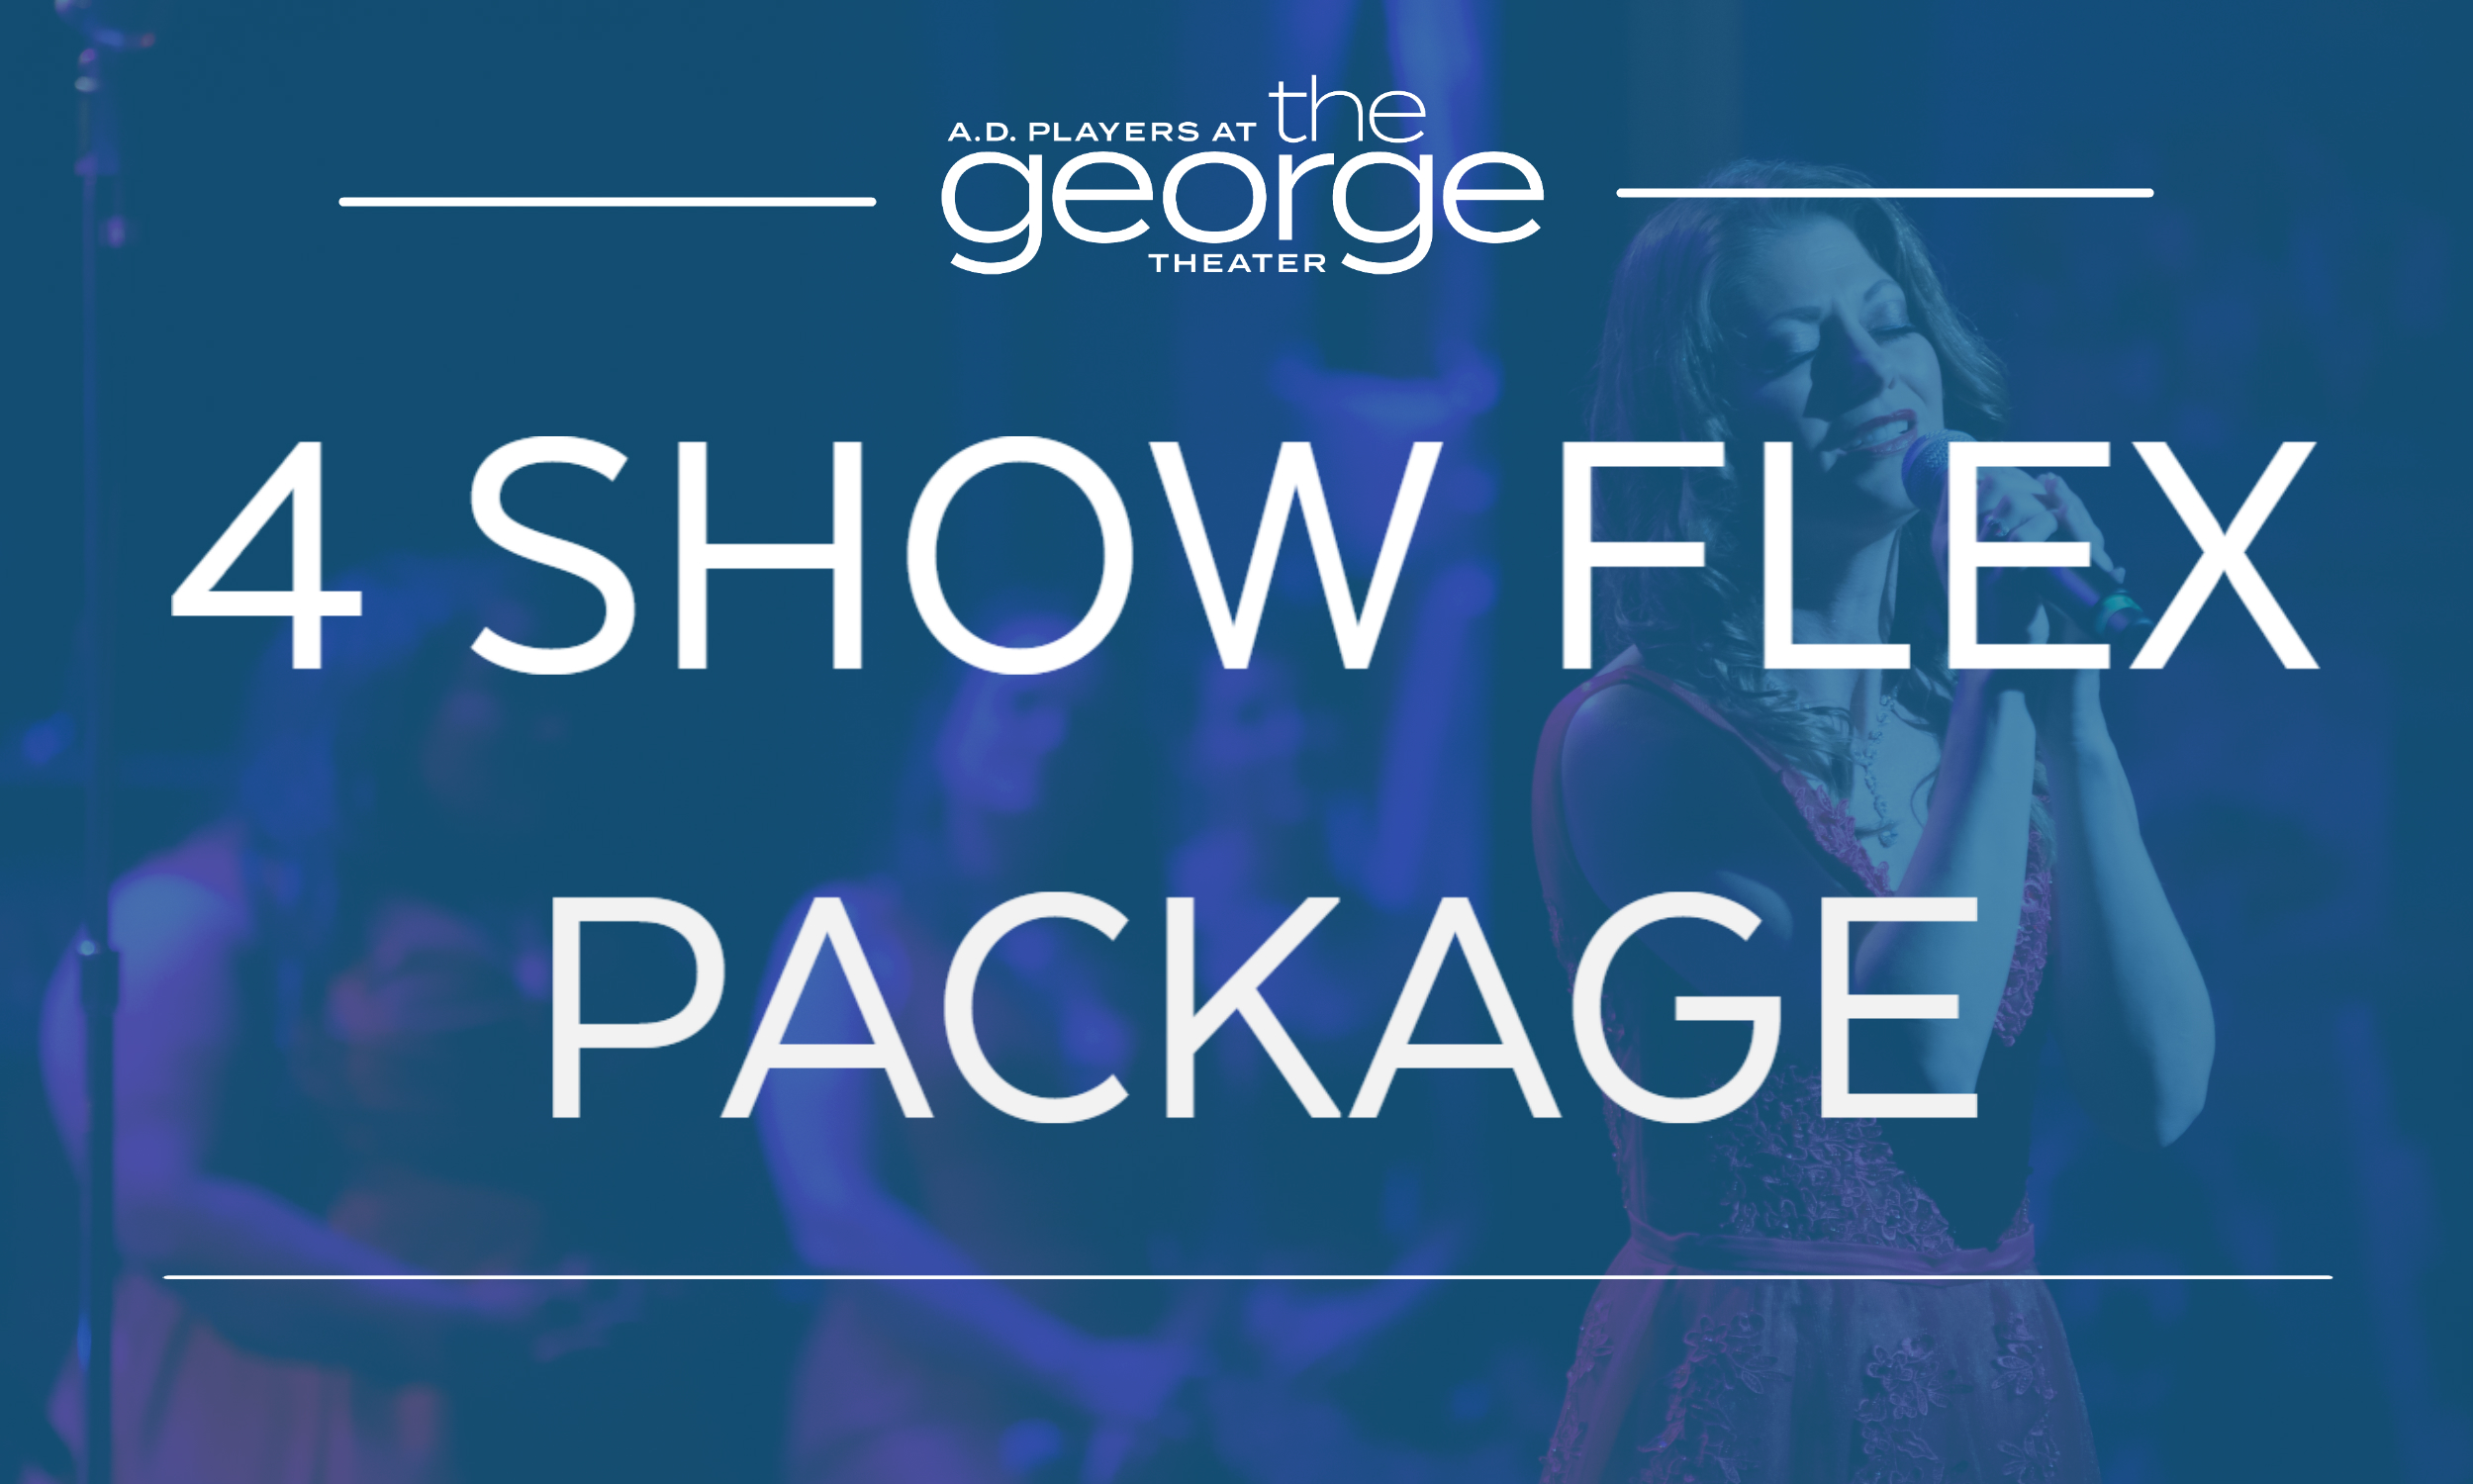 4 SHOW FLEX PACKAGE - Up to 15% off, the 4 Show Flex Package allows you to pick the 4 shows you want to see this season. You may not be guaranteed the exact same seats for each performance, but they will be the best available. You receive all the benefits of being Subscriber.